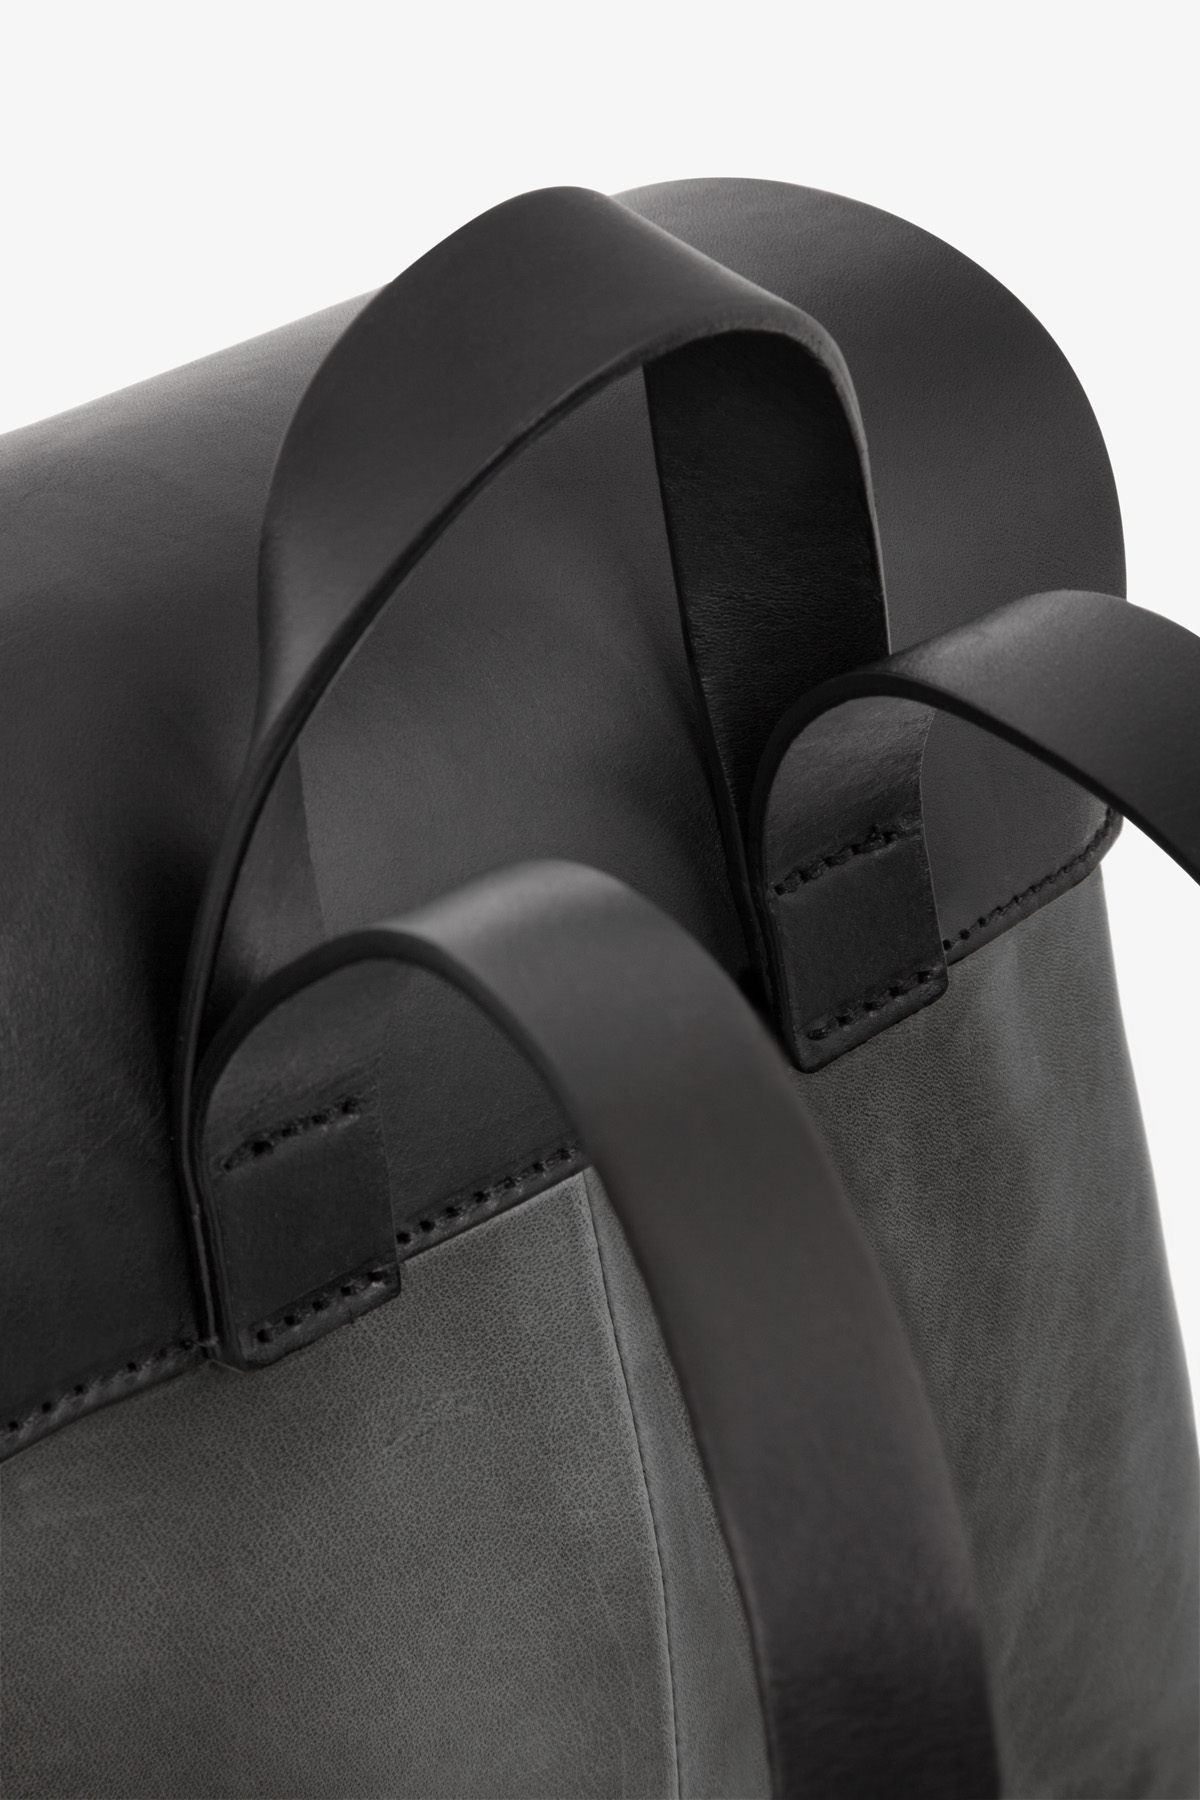 dclr009-b-backpack-a2-shadowgray-detail